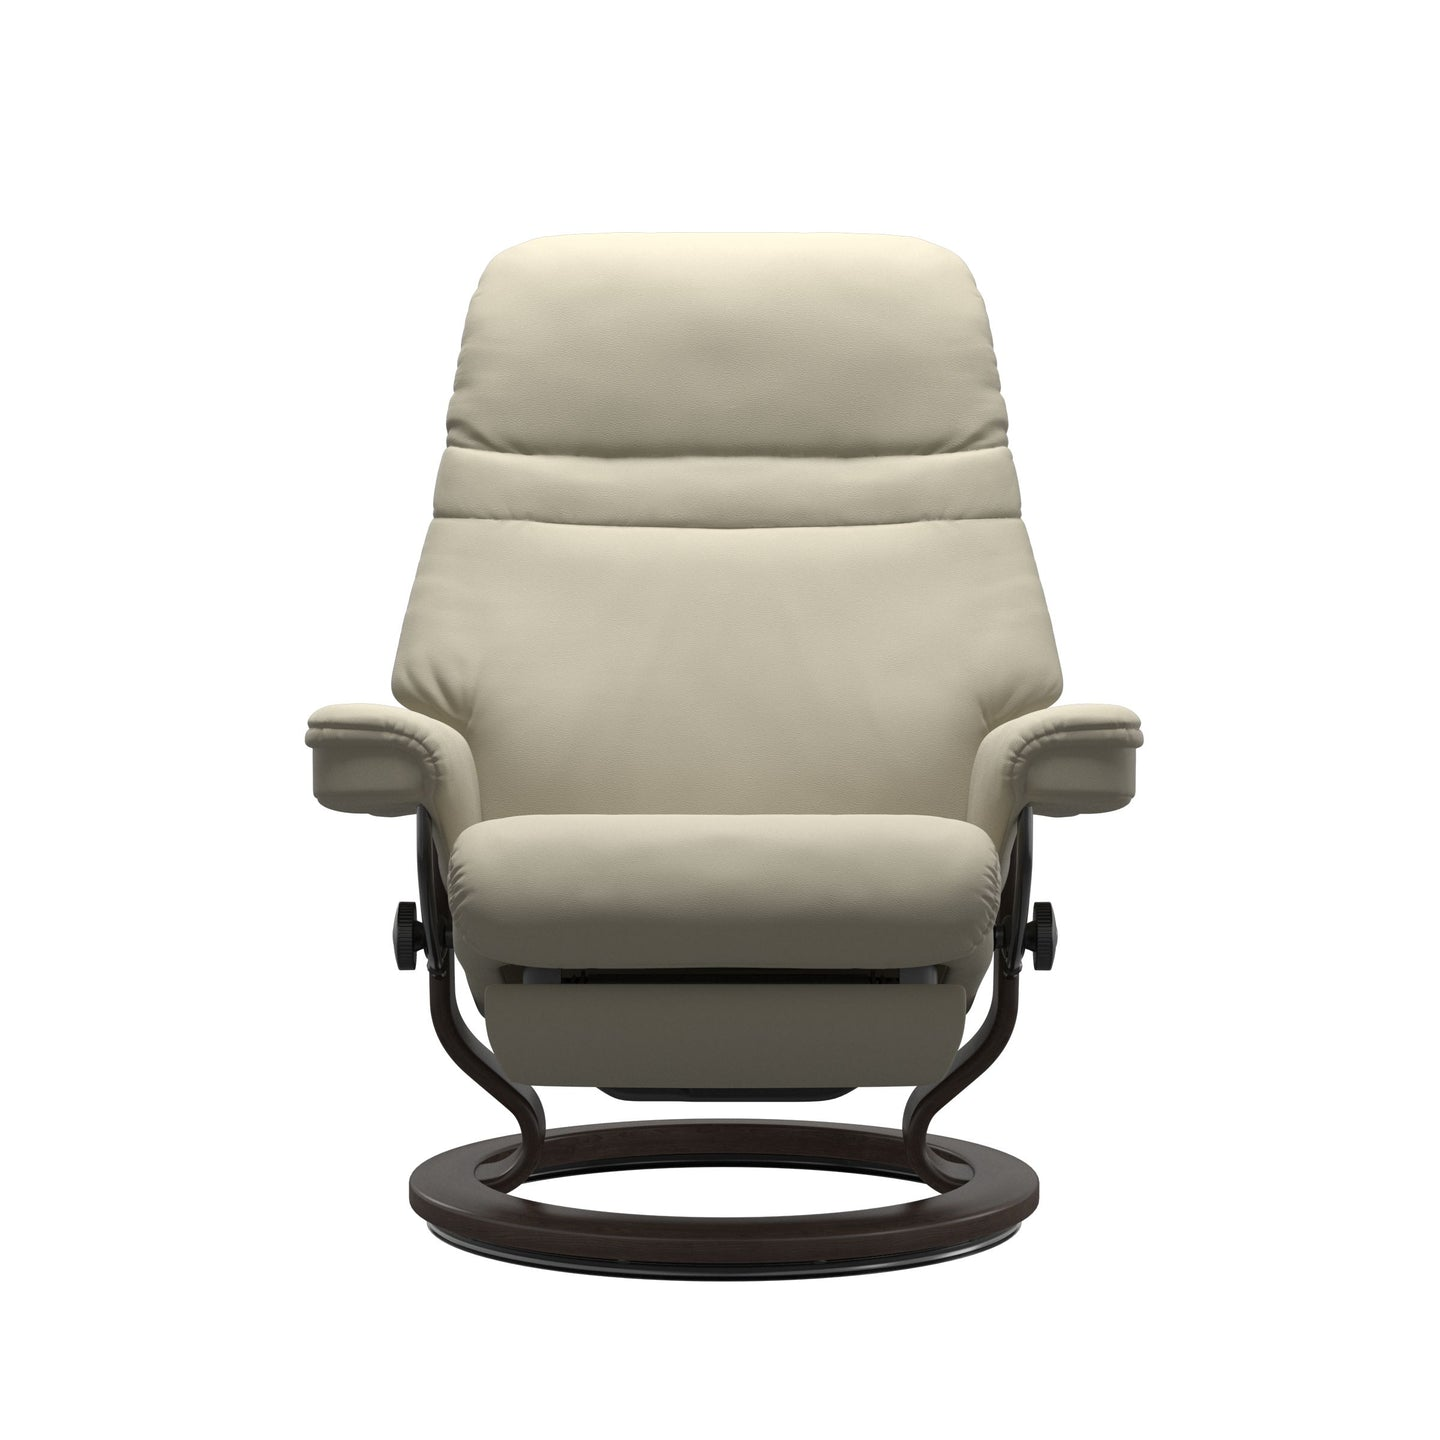 Stressless® Sunrise (M) Classic Power leg